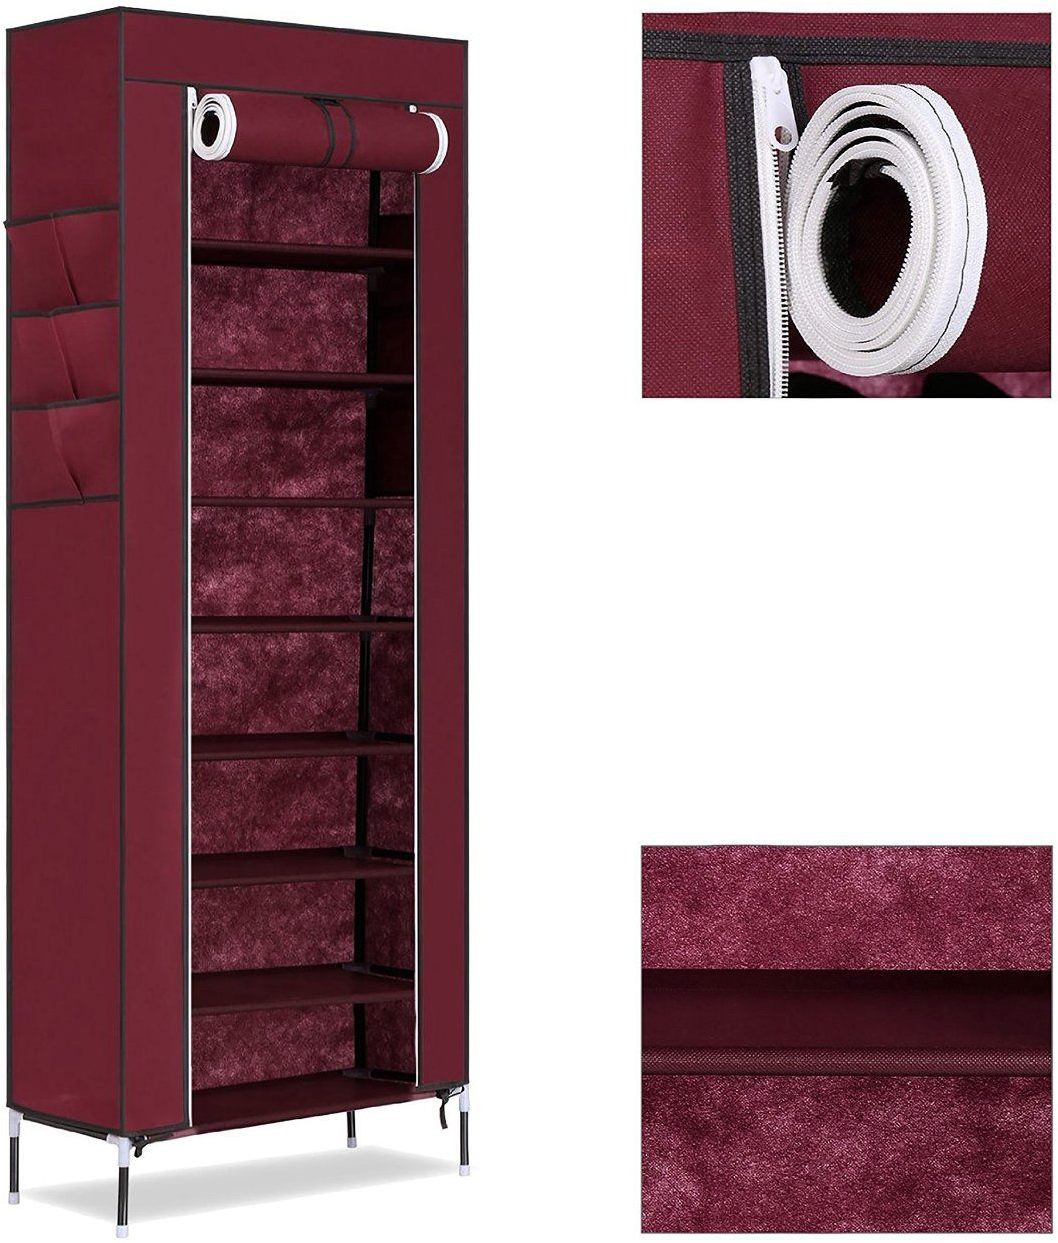 View Easydeals Fabric Shoe Cabinet(9 Shelves) Furniture (Easydeals)